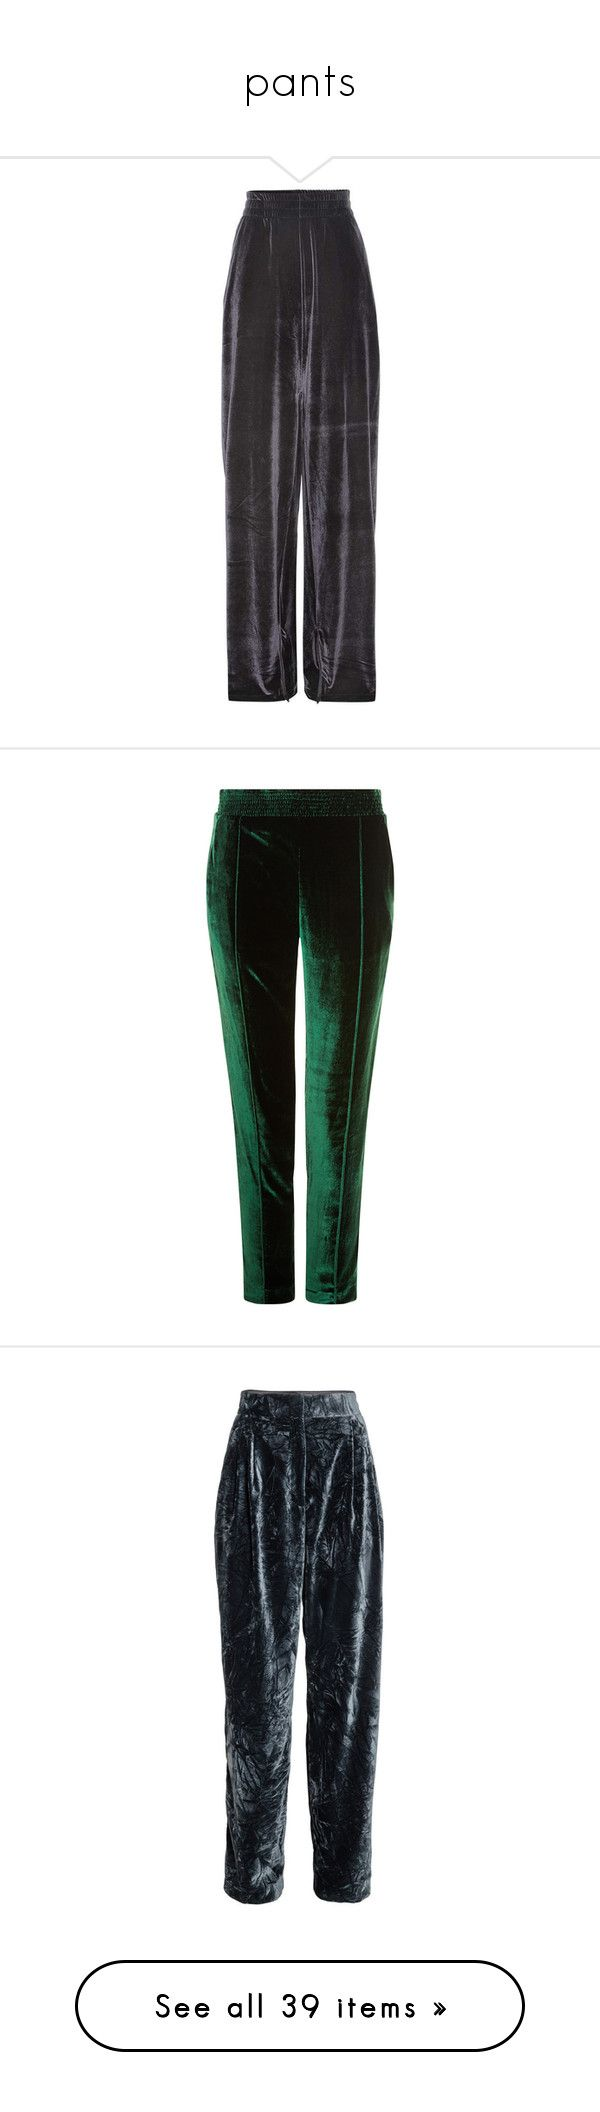 """pants"" by brigi-bodoki ❤ liked on Polyvore featuring activewear, activewear pants, pants, bottoms, black, track pants, embroidered sportswear, capris, trousers and emerald green pants"